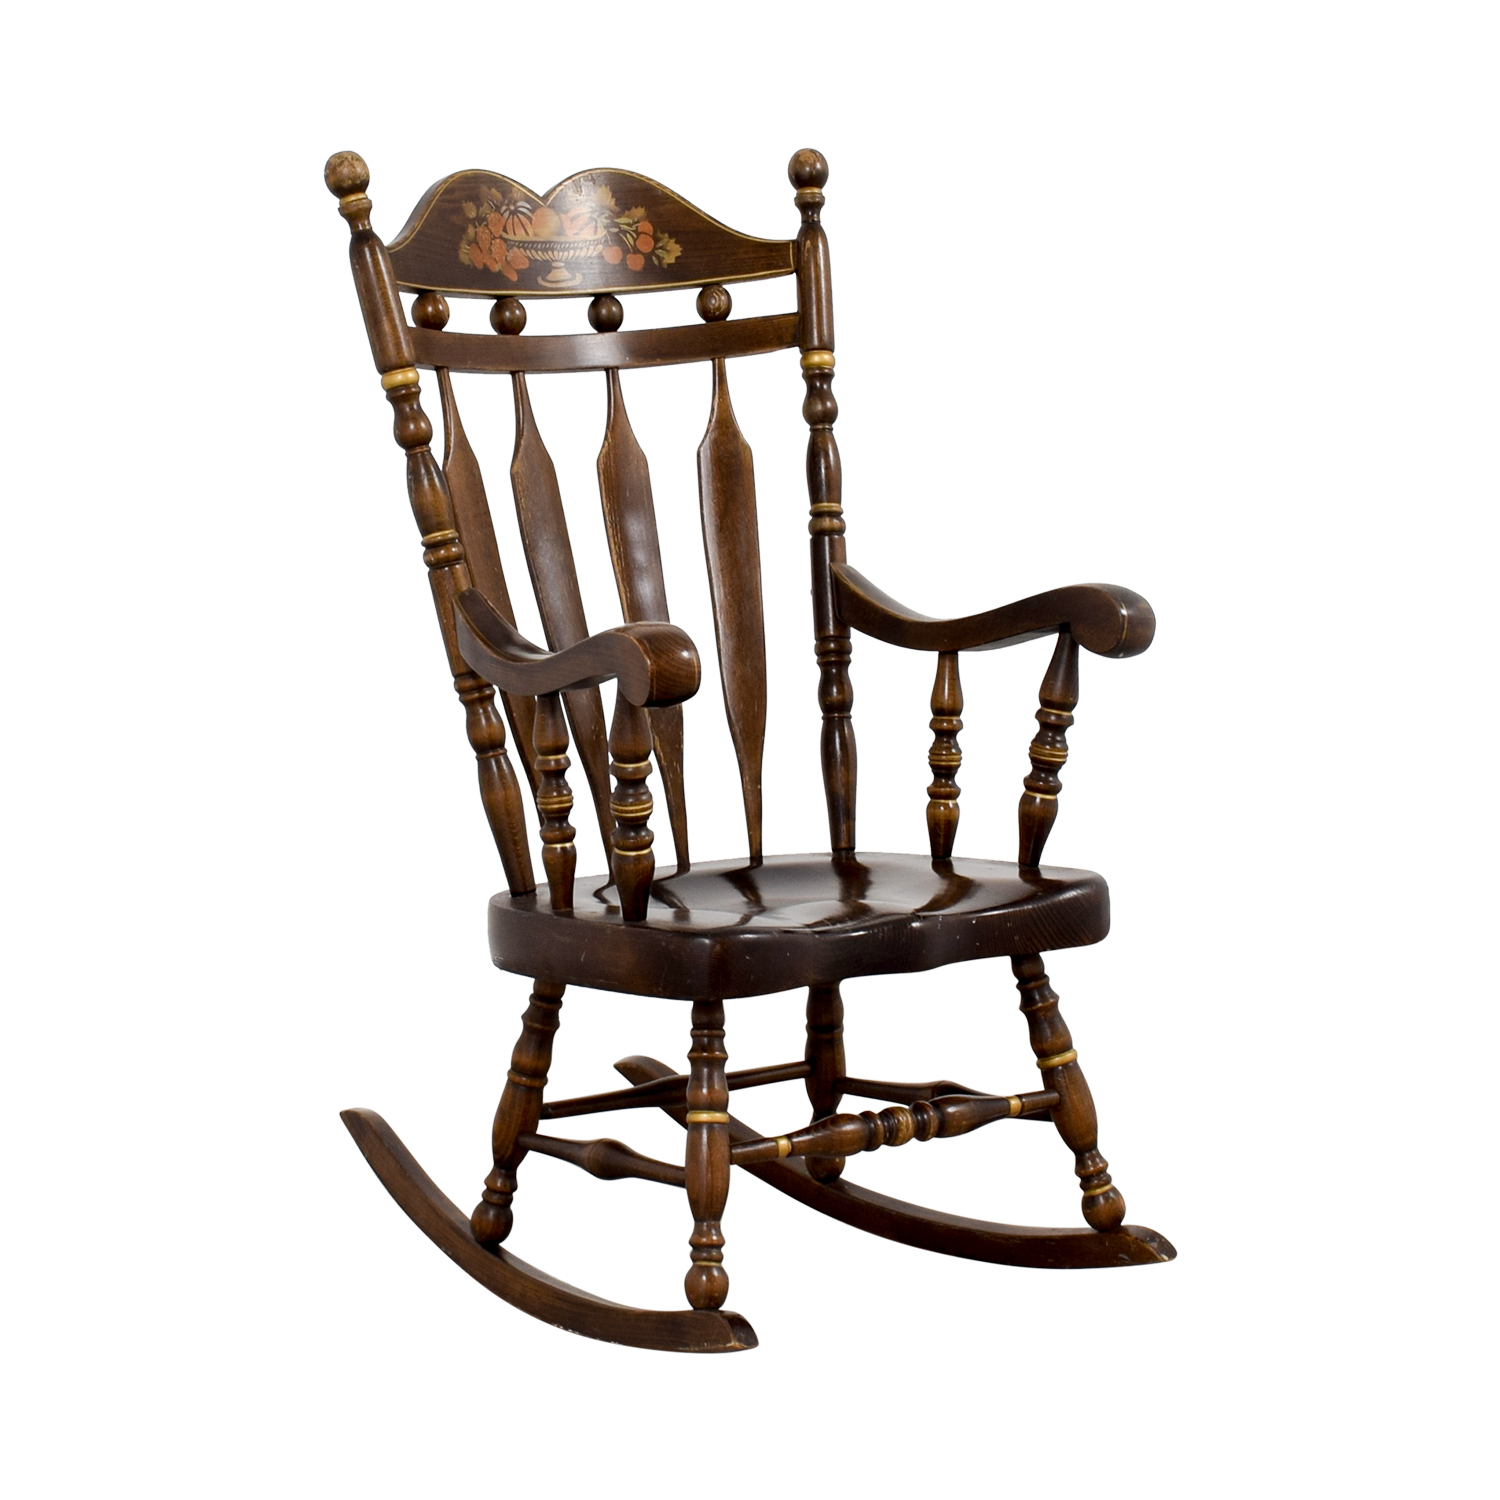 chair rocking old on white picture wood wooden photo stock background